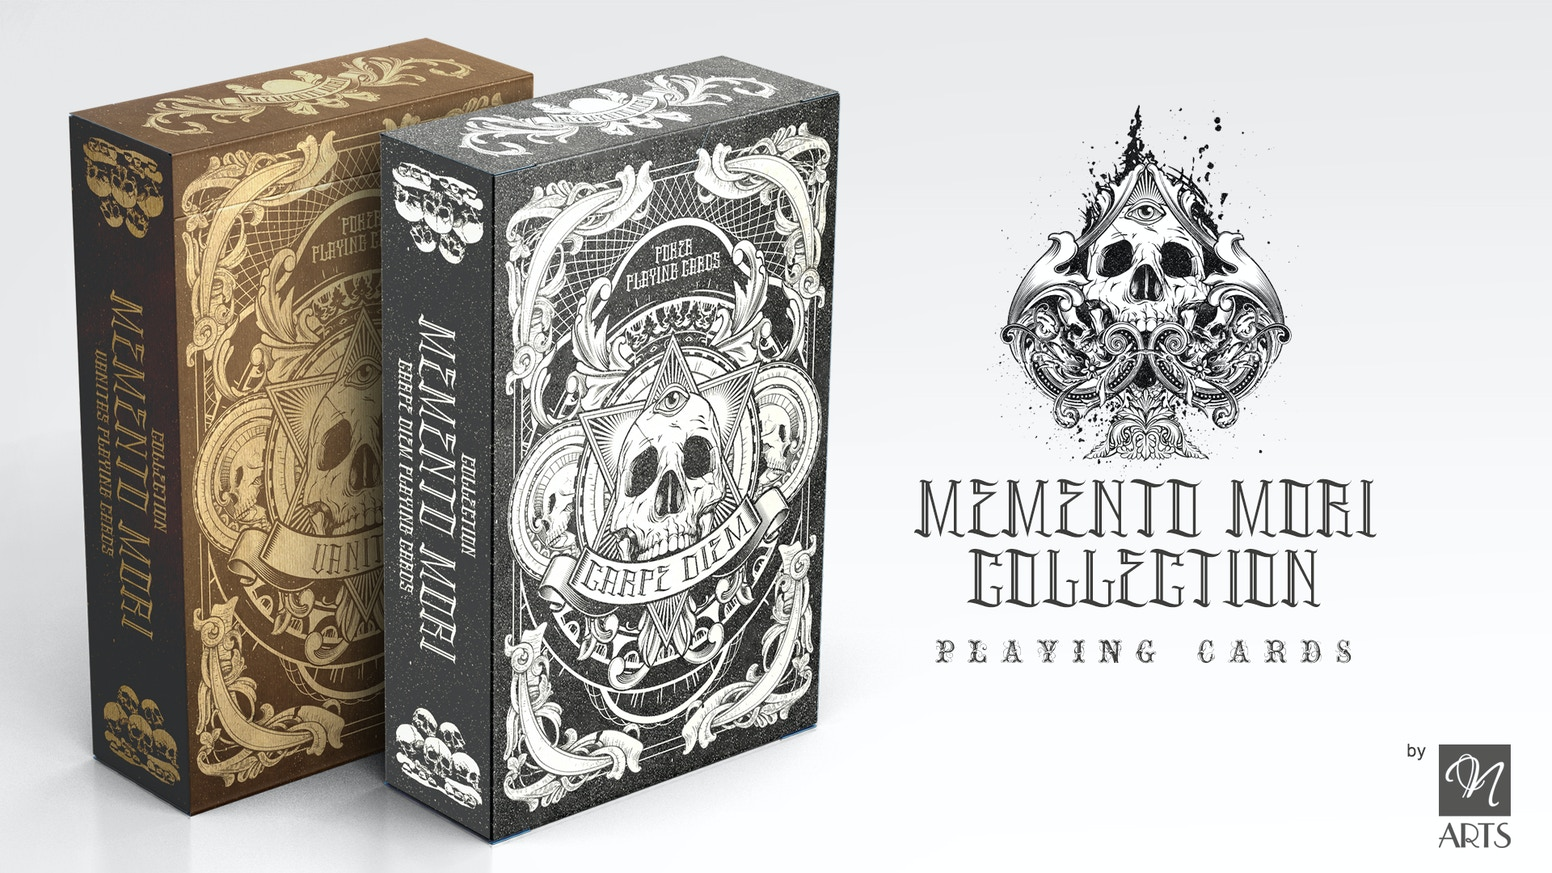 54 Custom Hand Drawn Playing Cards, That Reminds About The Vanity Of Earthly Life